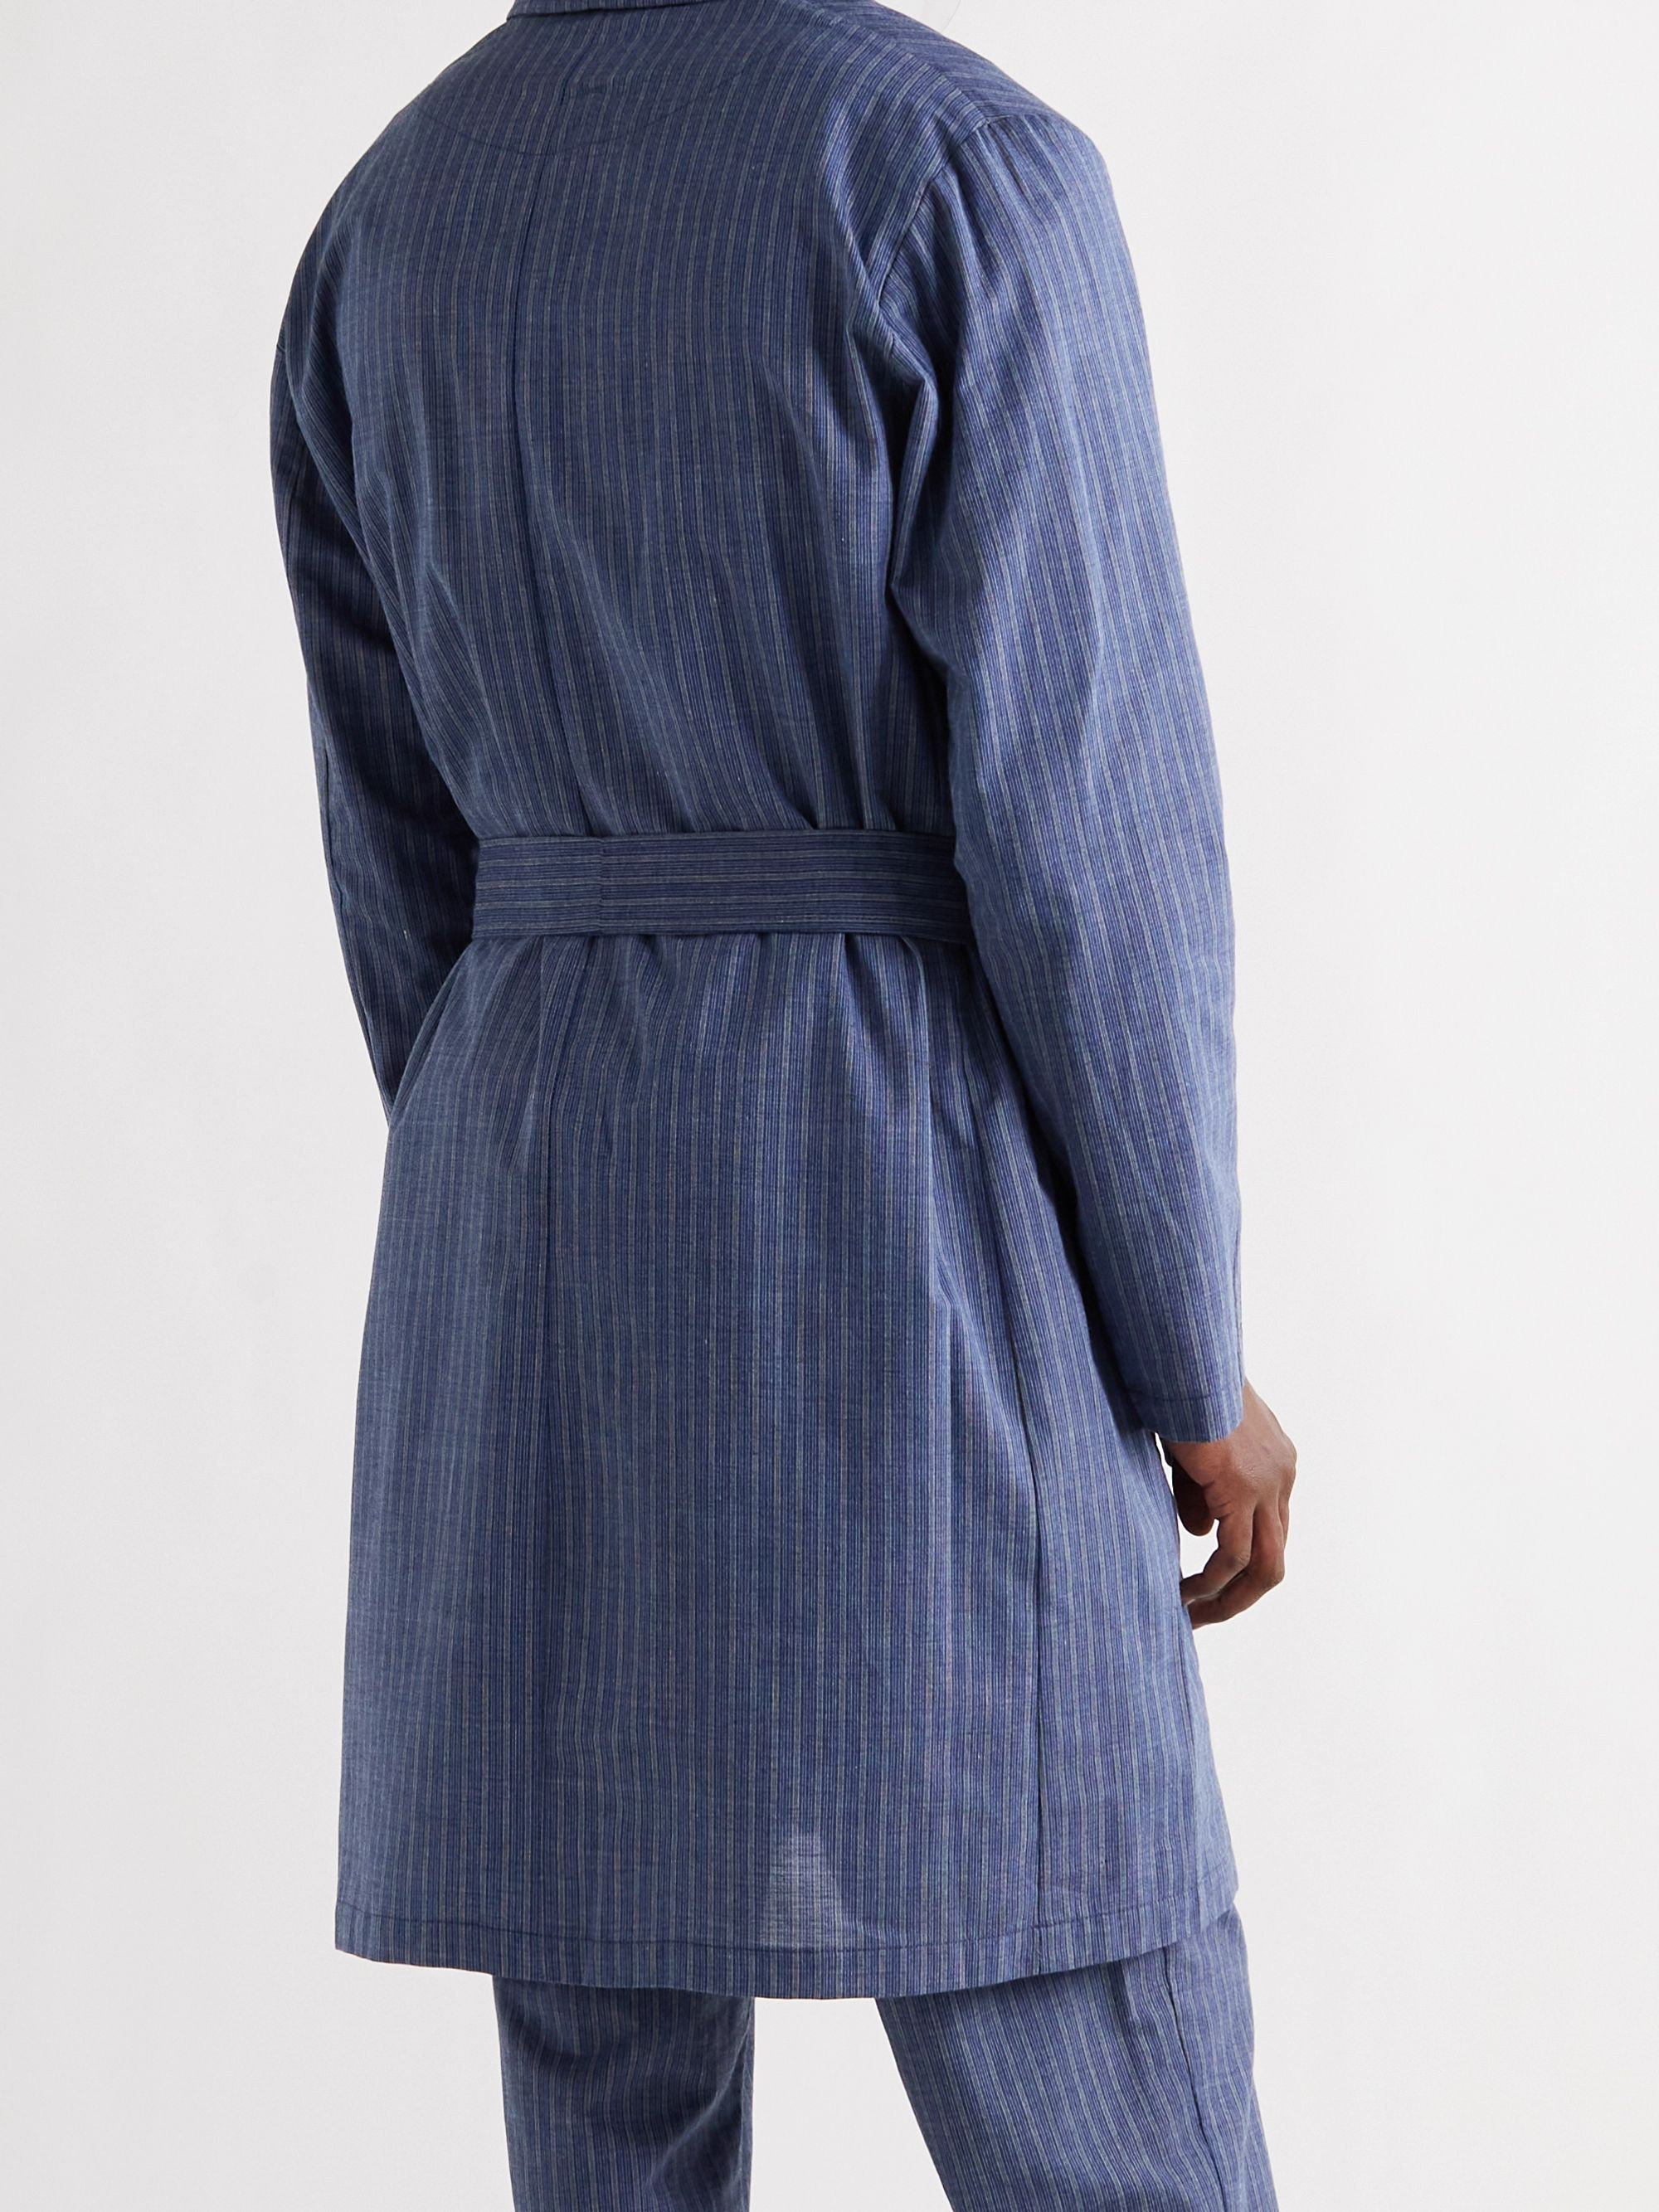 OLIVER SPENCER LOUNGEWEAR Townsend Striped Organic Cotton-Blend Robe